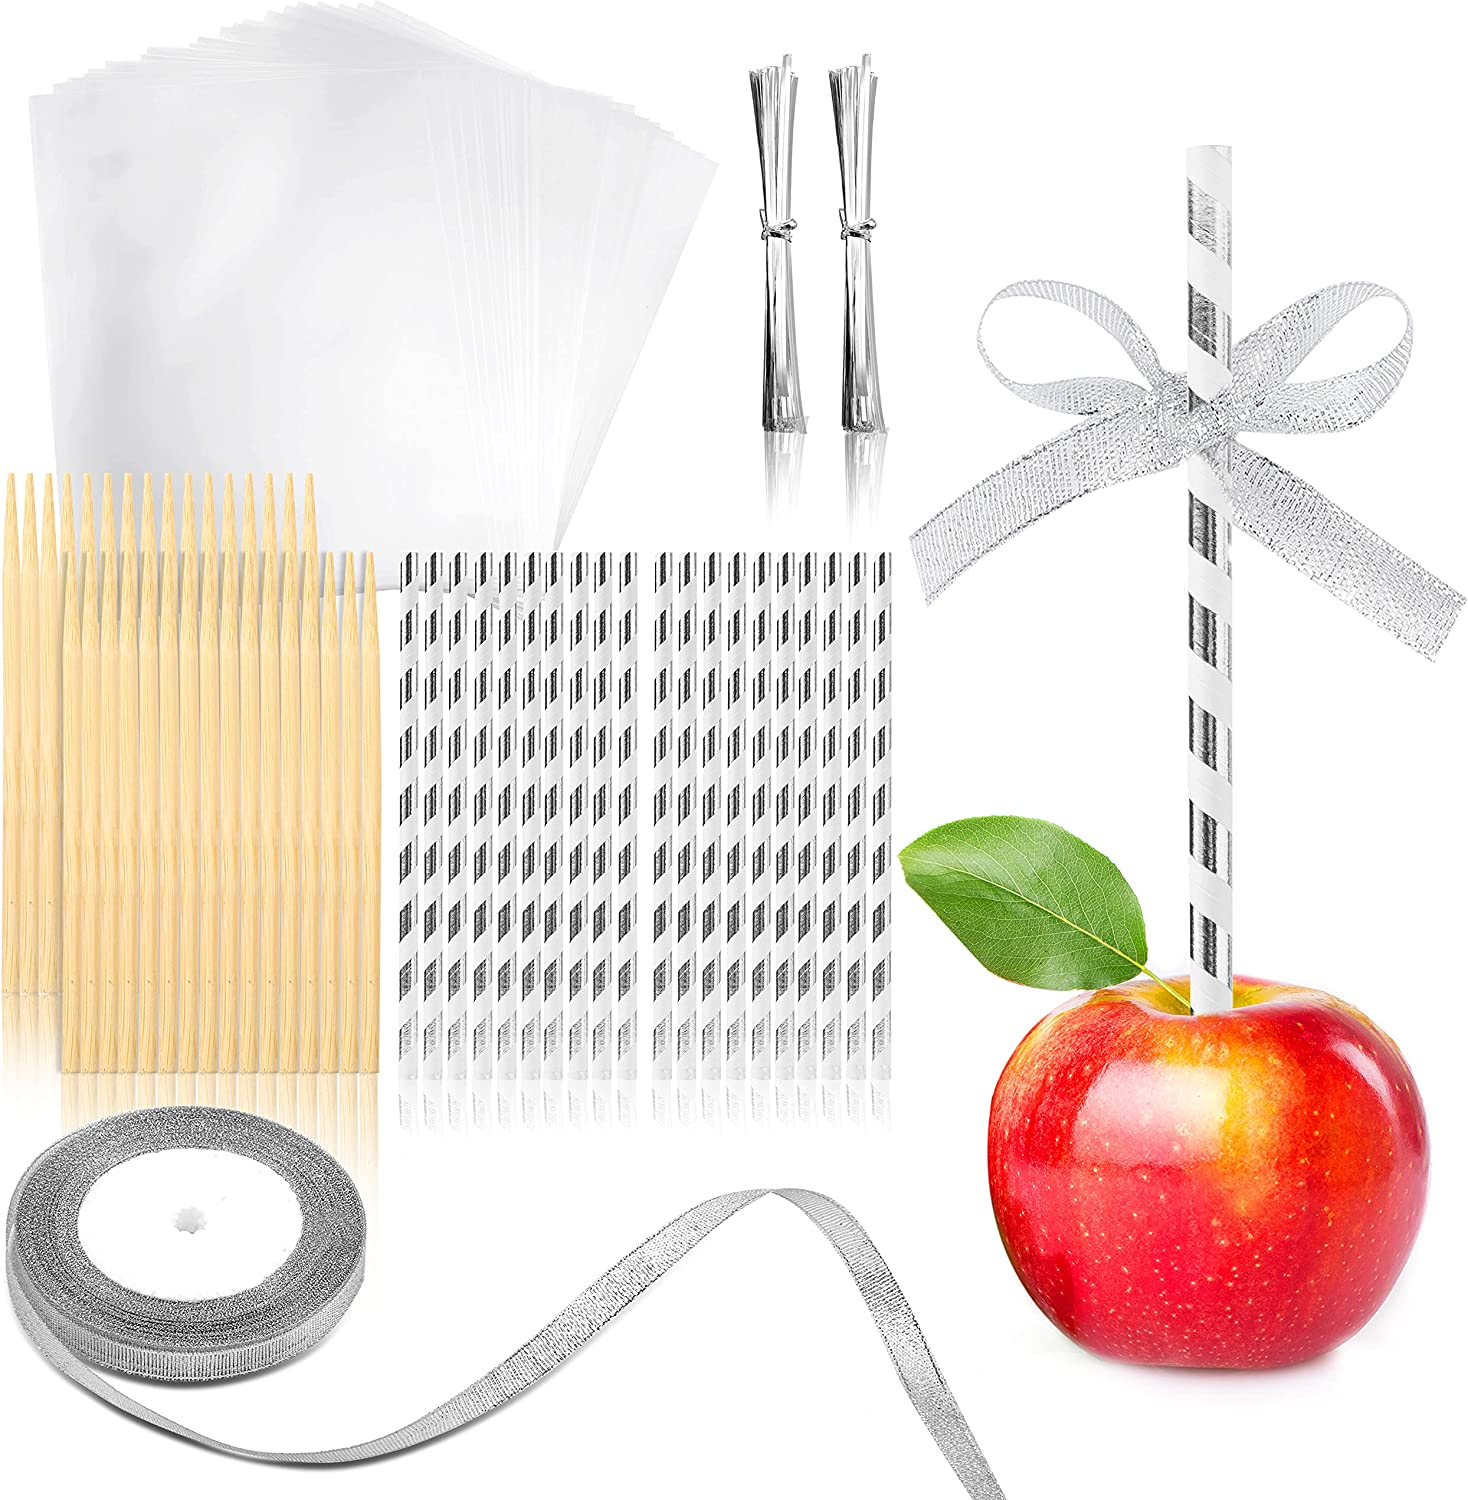 Pllieay 30 Pack Candy Apple Kit, Include Bamboo Sticks, Candy Glass Paper, Paper Straws, Glitter Ribbon, Metallic Twist Ties, Candy Apple Making Accessory for Caramel Apples, Cake Pop